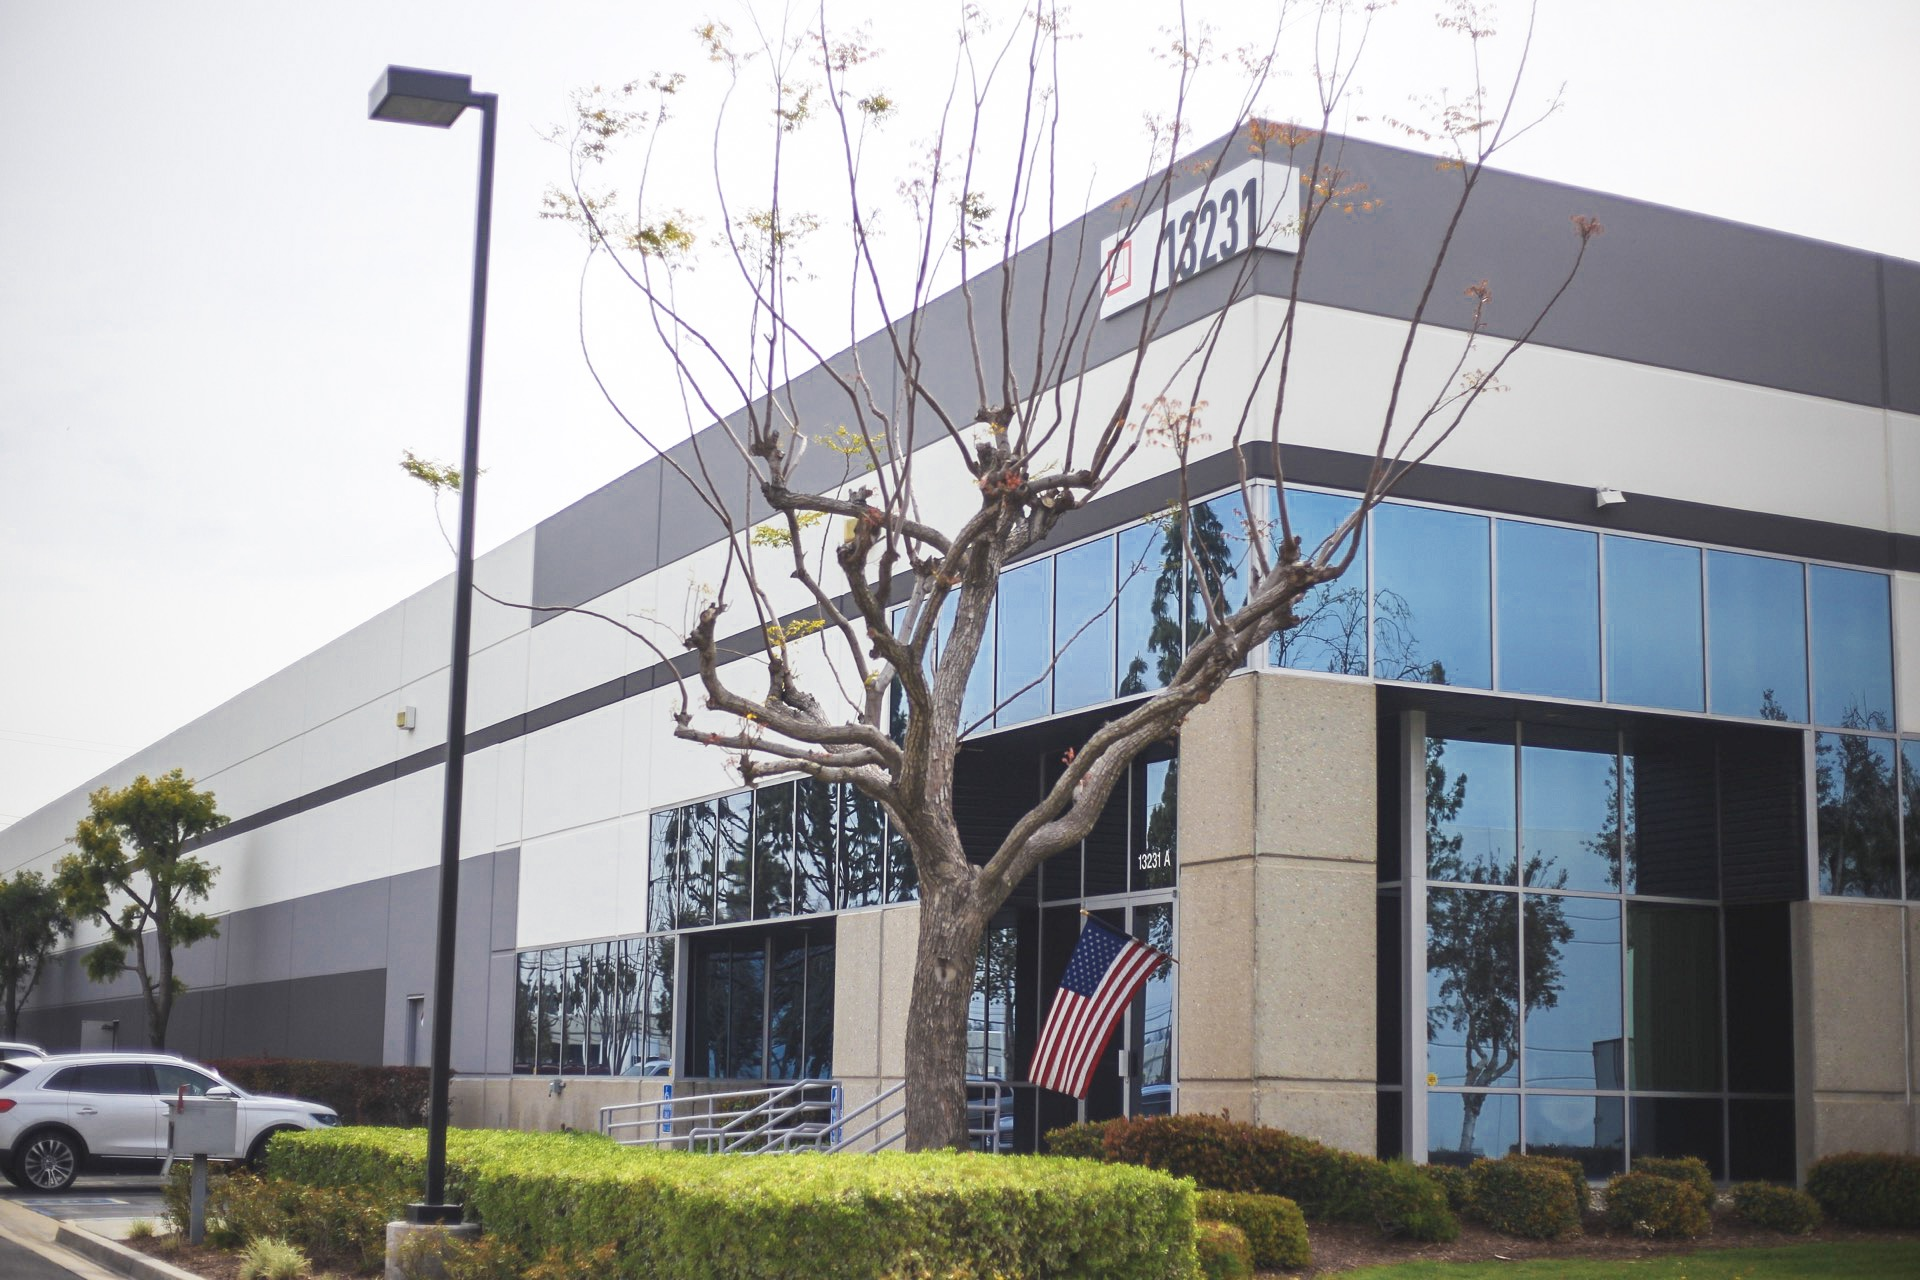 MDM Packaging & Supplies located in Fontana, CA.